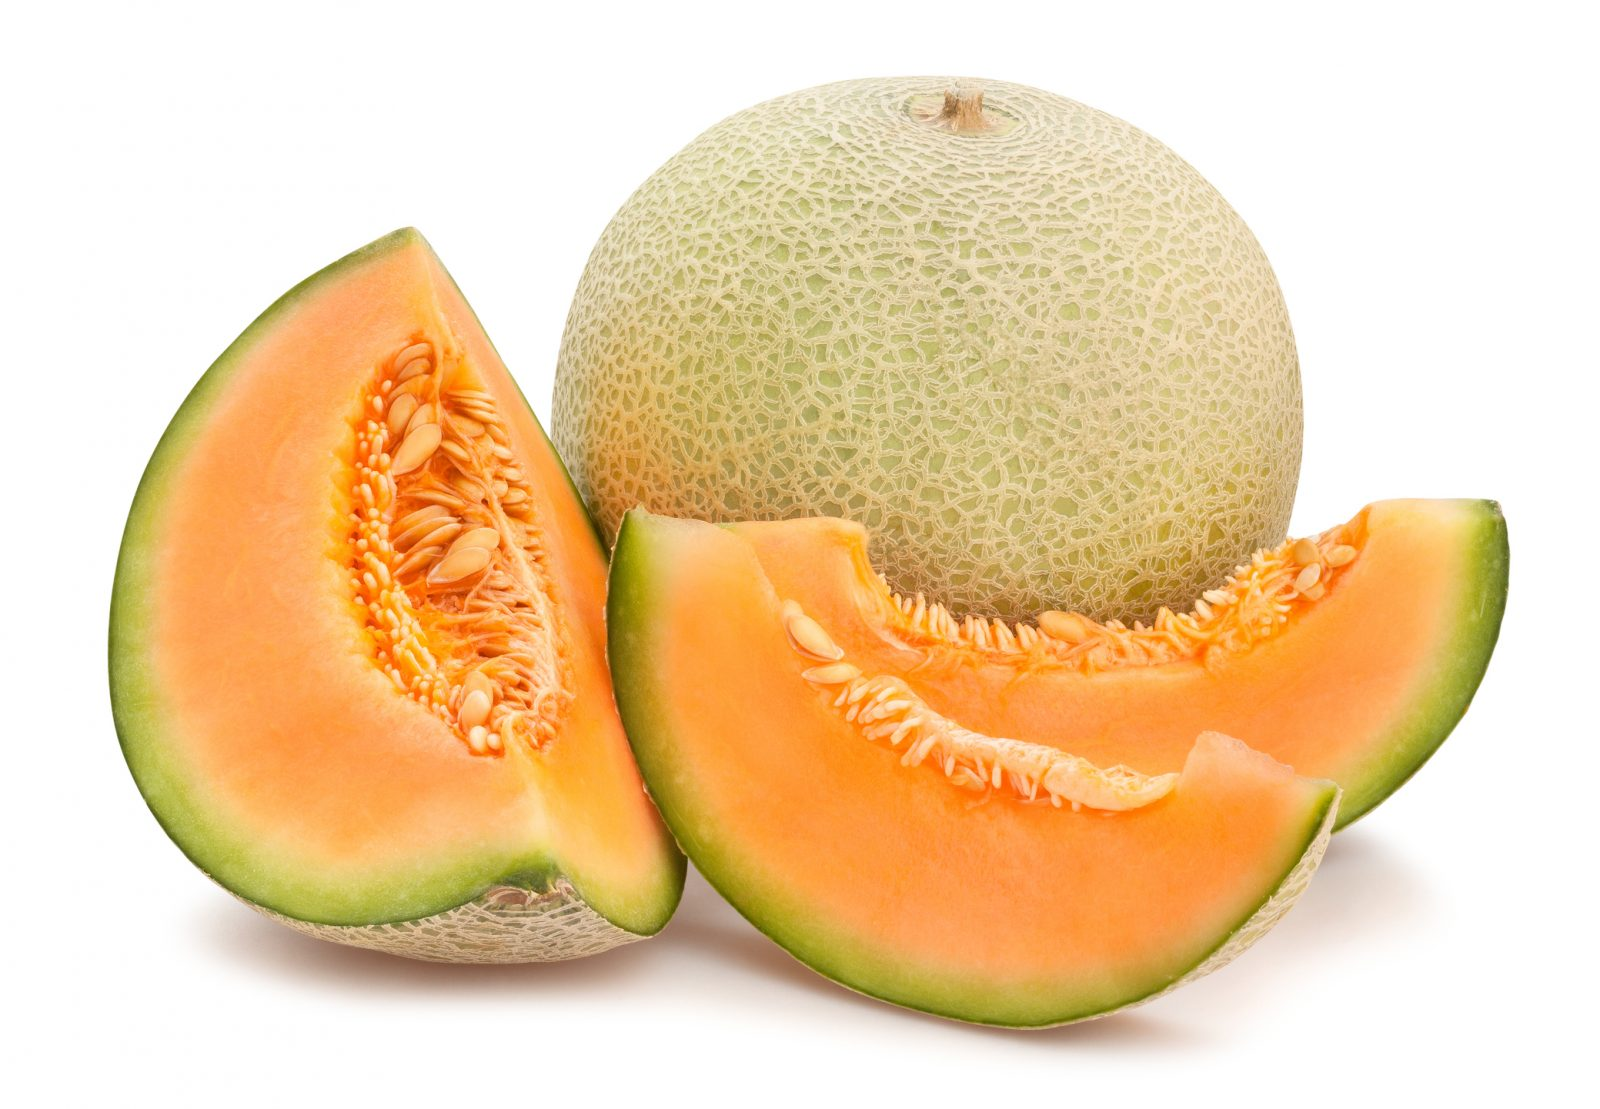 What's so Complicated about Cantaloupe? Plenty